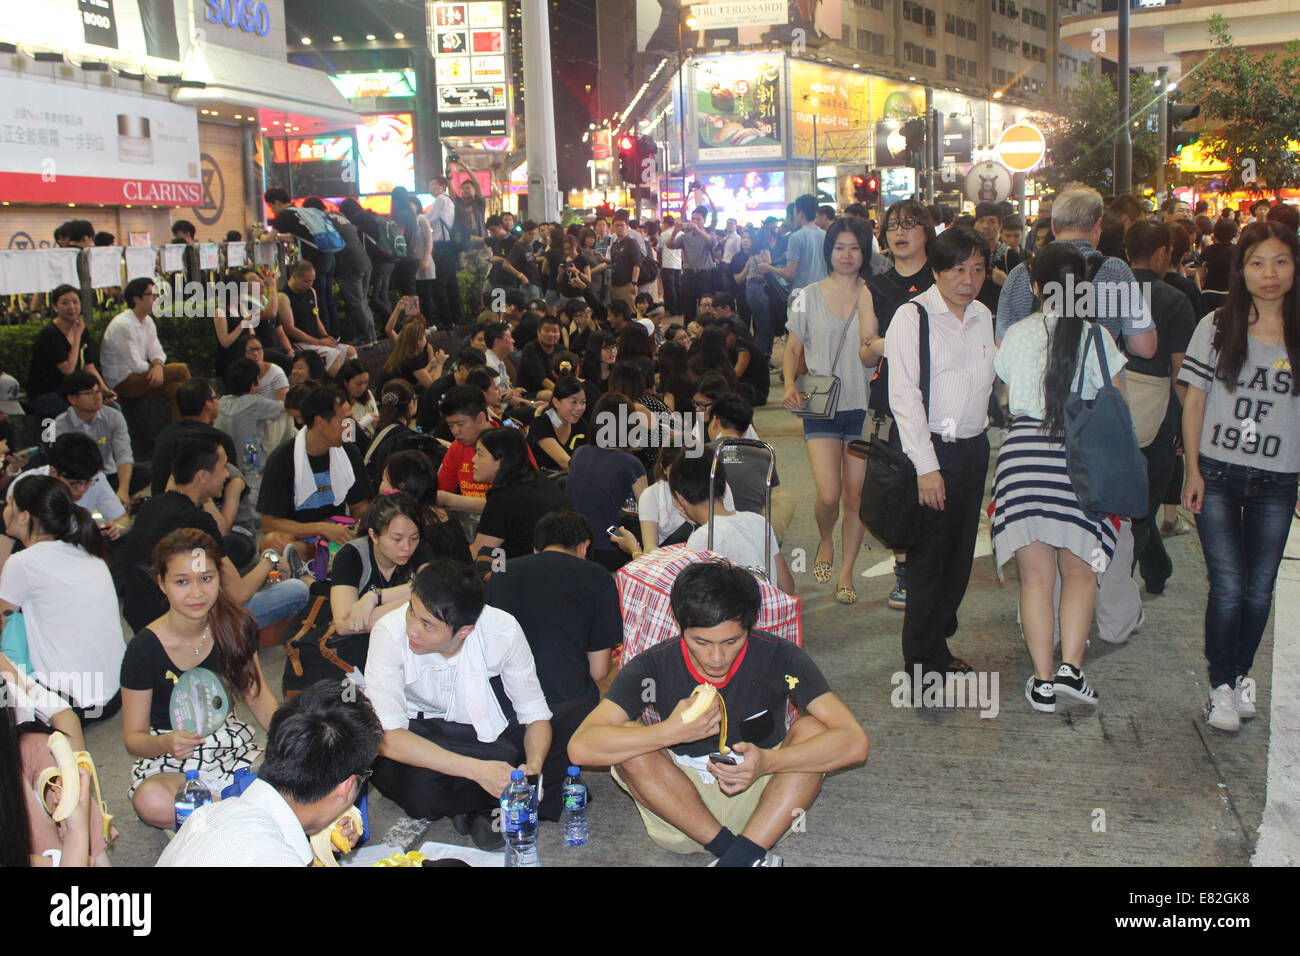 Hong Kong, 29 Sep, 2014. Hong Kong Protests: Outside Sogo Department Store on Hennessy Road in Causeway Bay. Pro - Stock Image